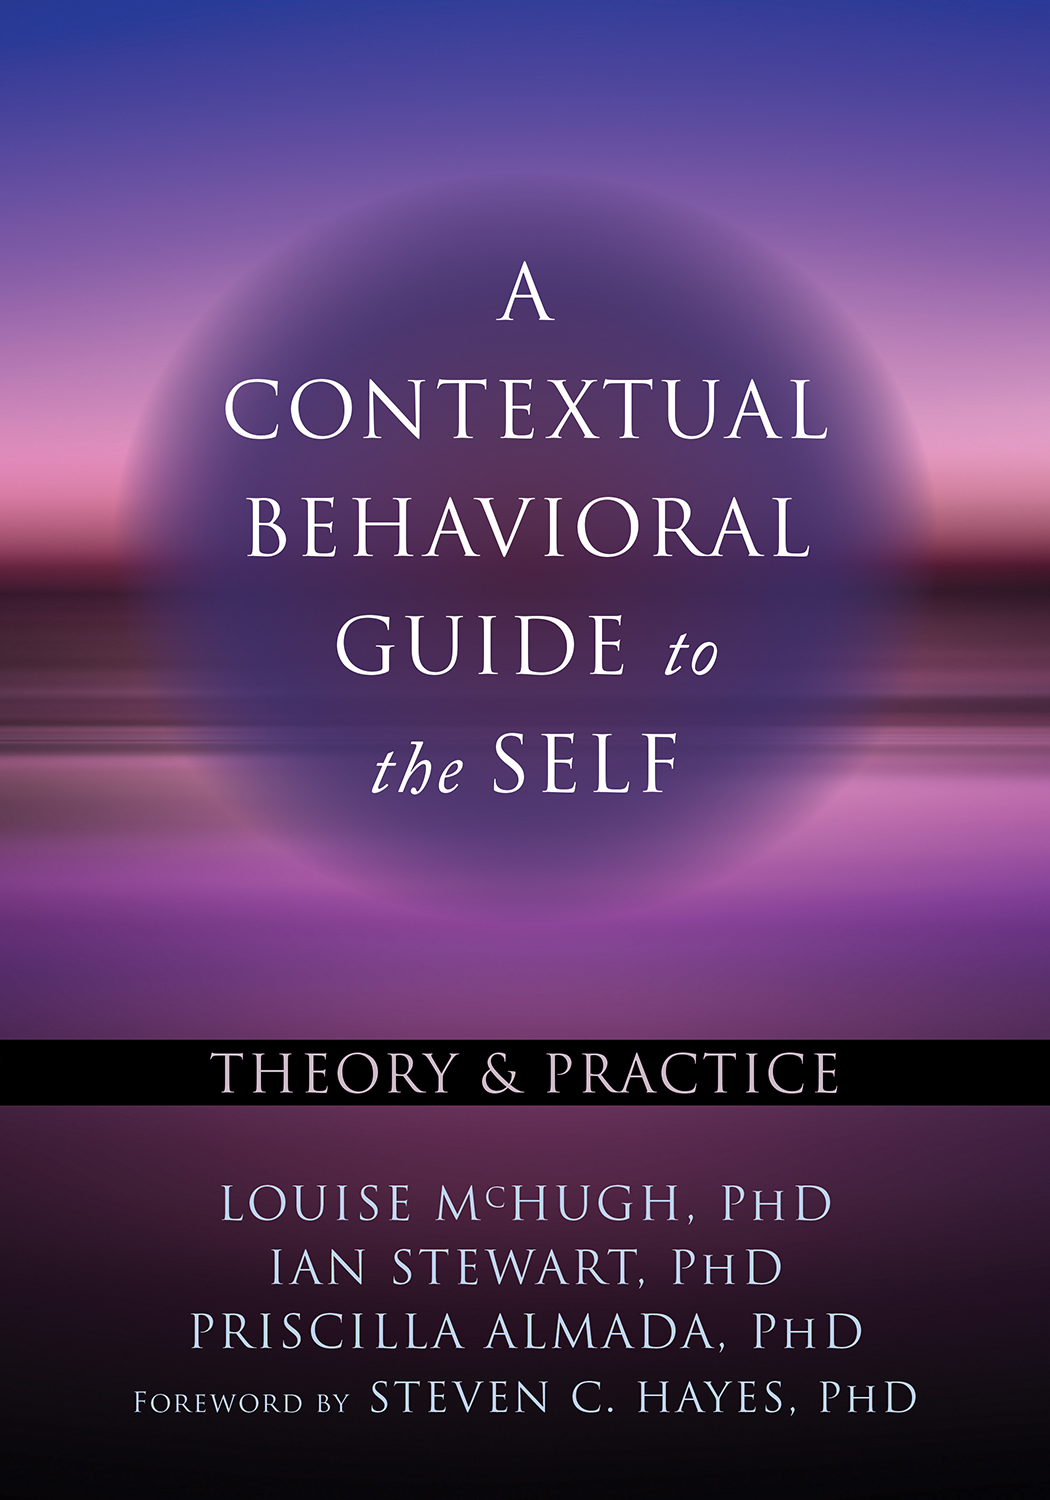 A Contextual Behavioral Guide to the Self Theory and Practice